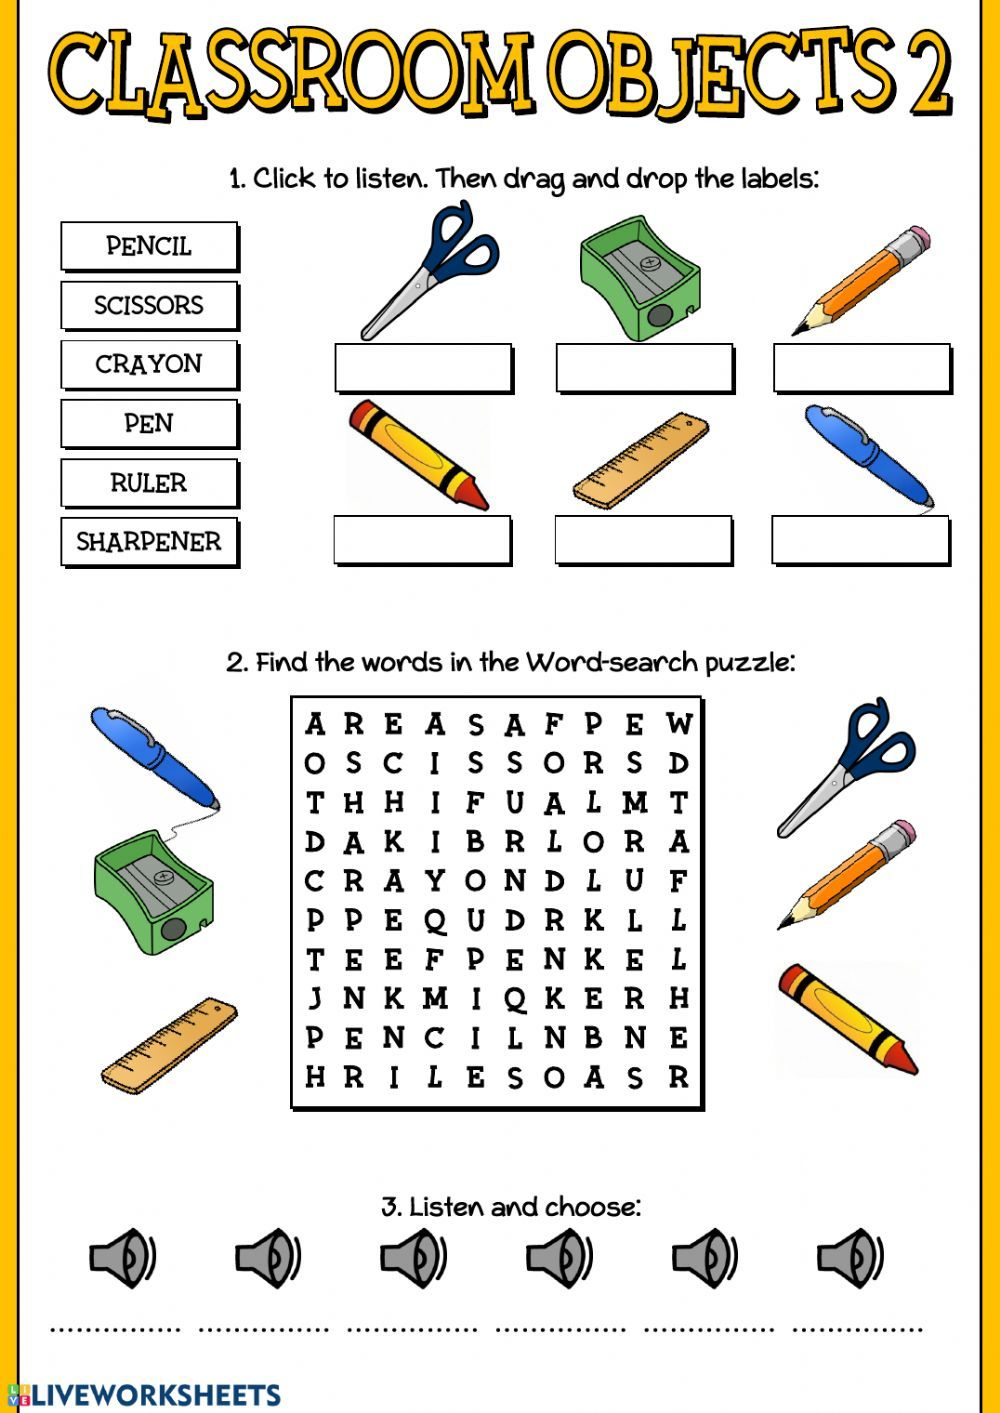 medium resolution of Classroom objects 2 - Interactive worksheet   English language learning  activities